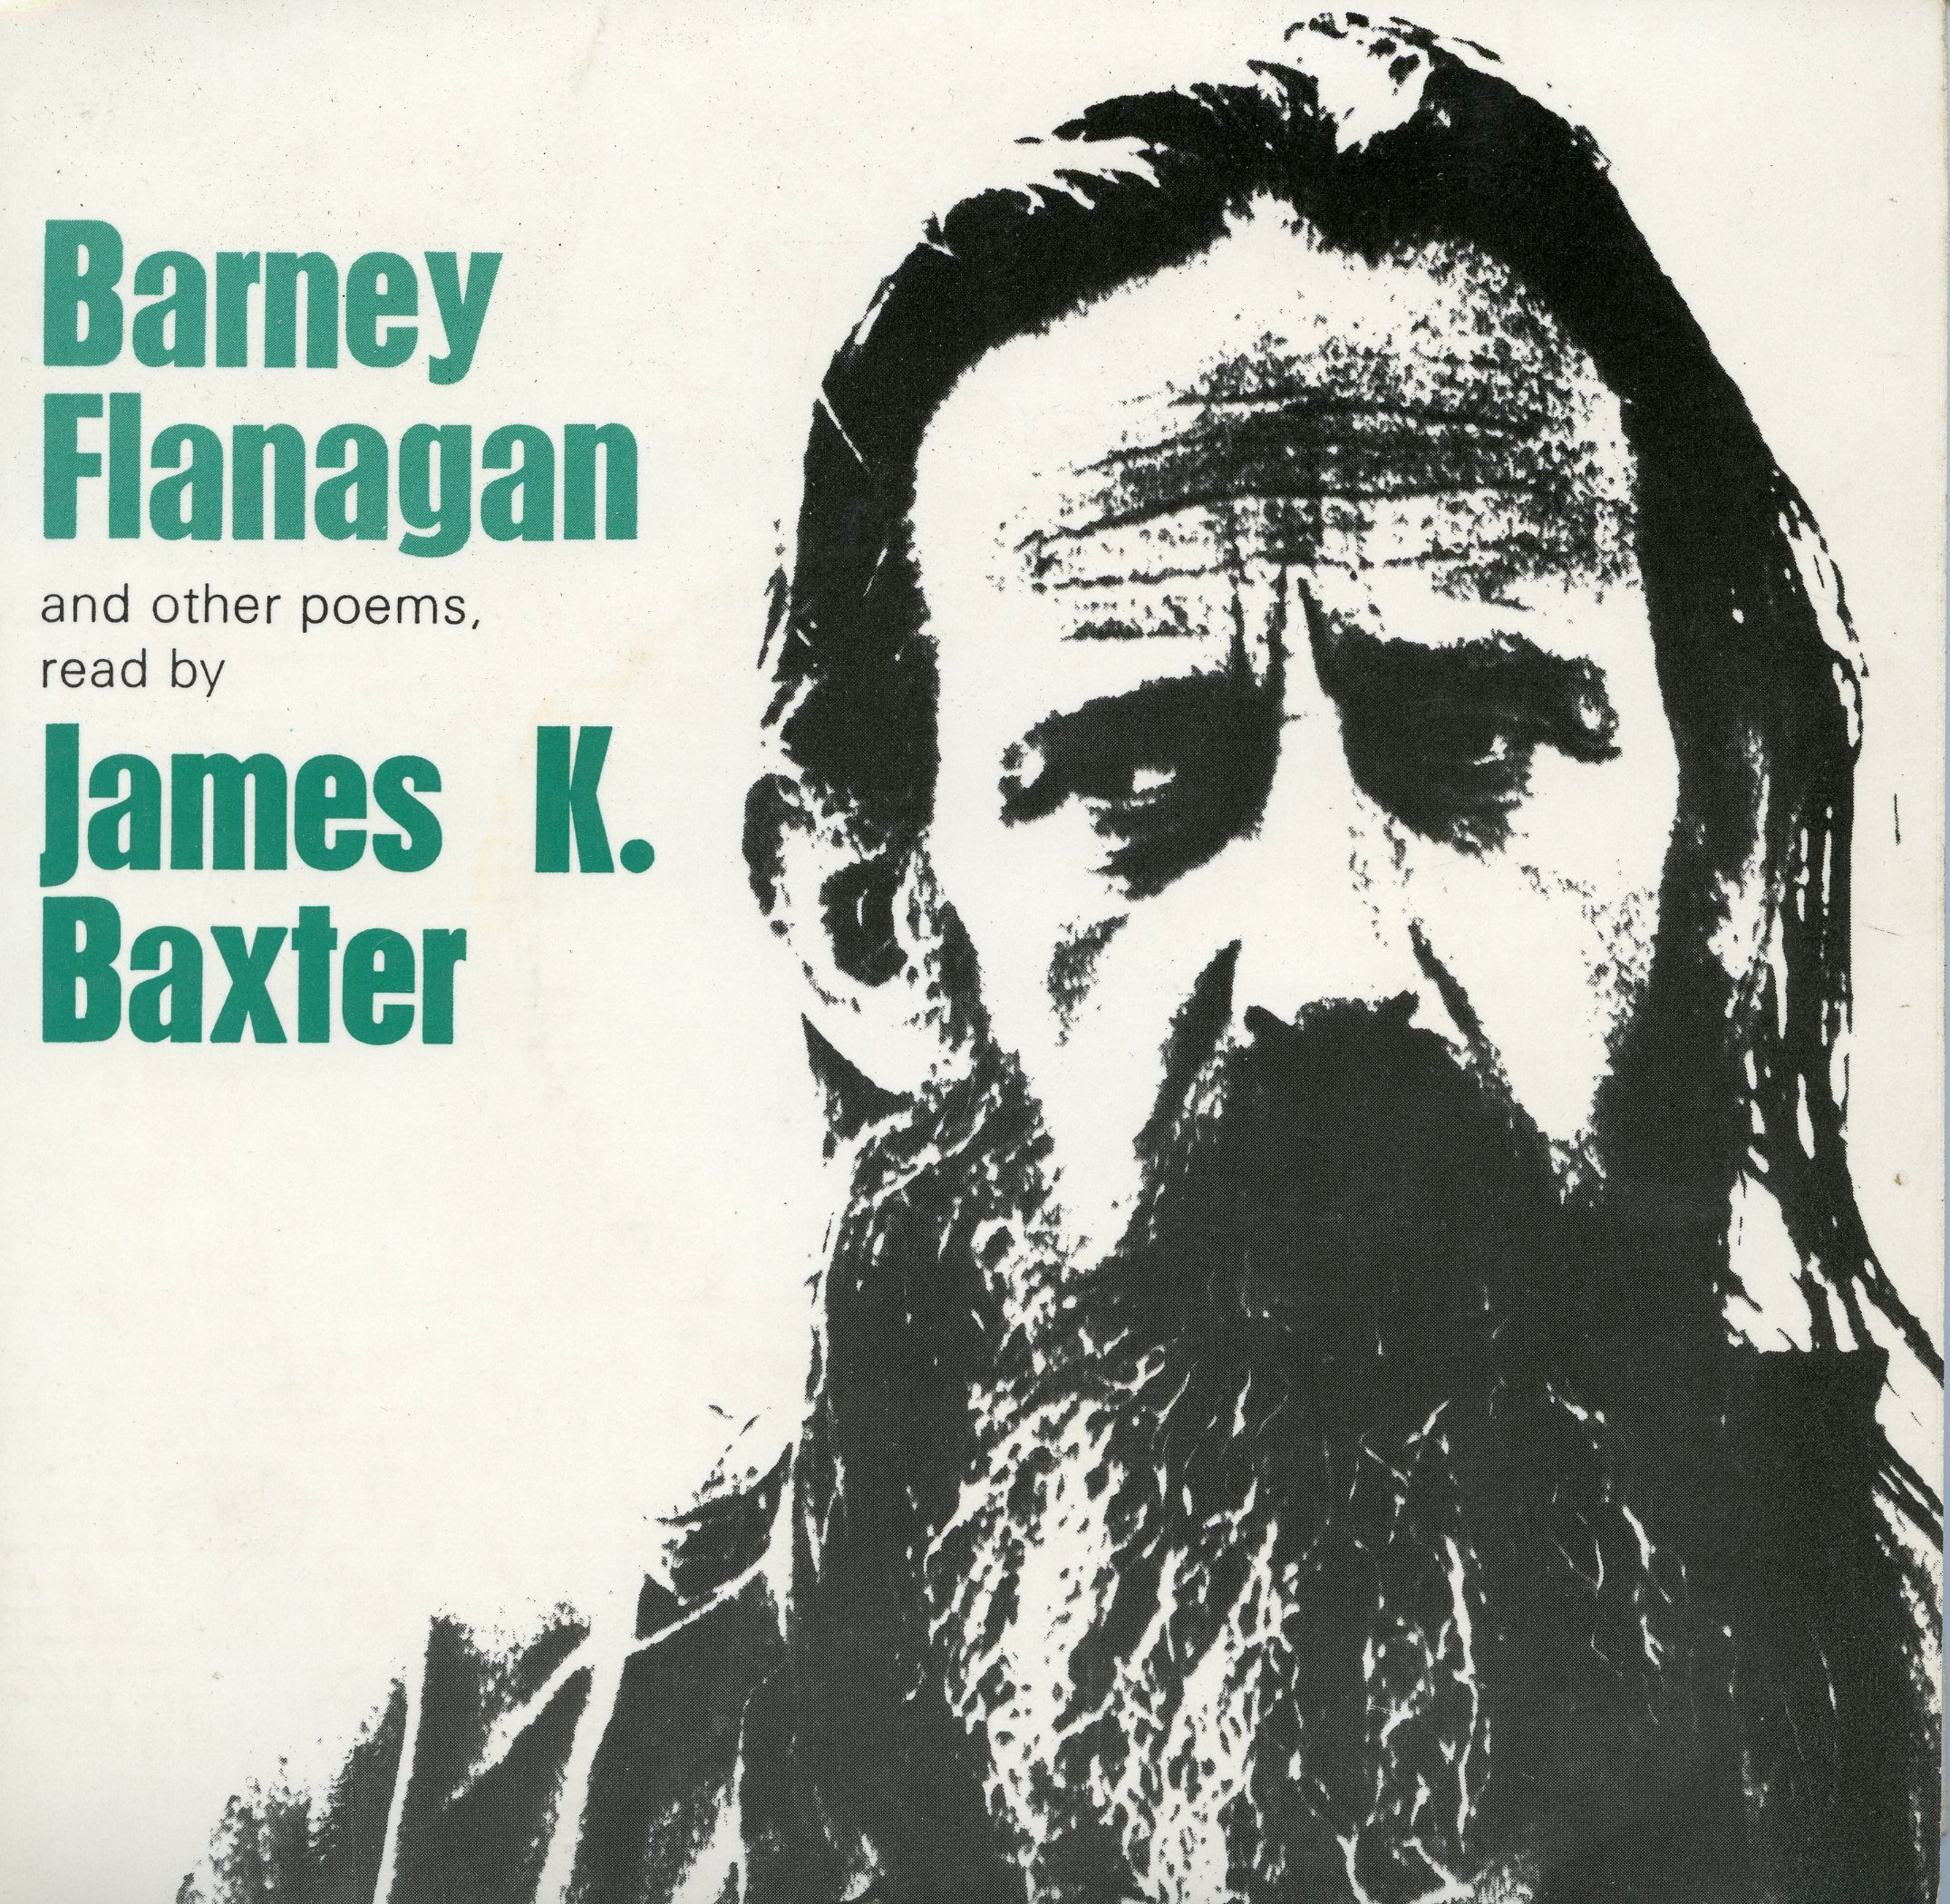 james k baxter James k baxter 1926 -1972 james keir baxter was a poet, and is a celebrated figure in new zealand society his career also included plays, literary criticism, and social and religious commentary.